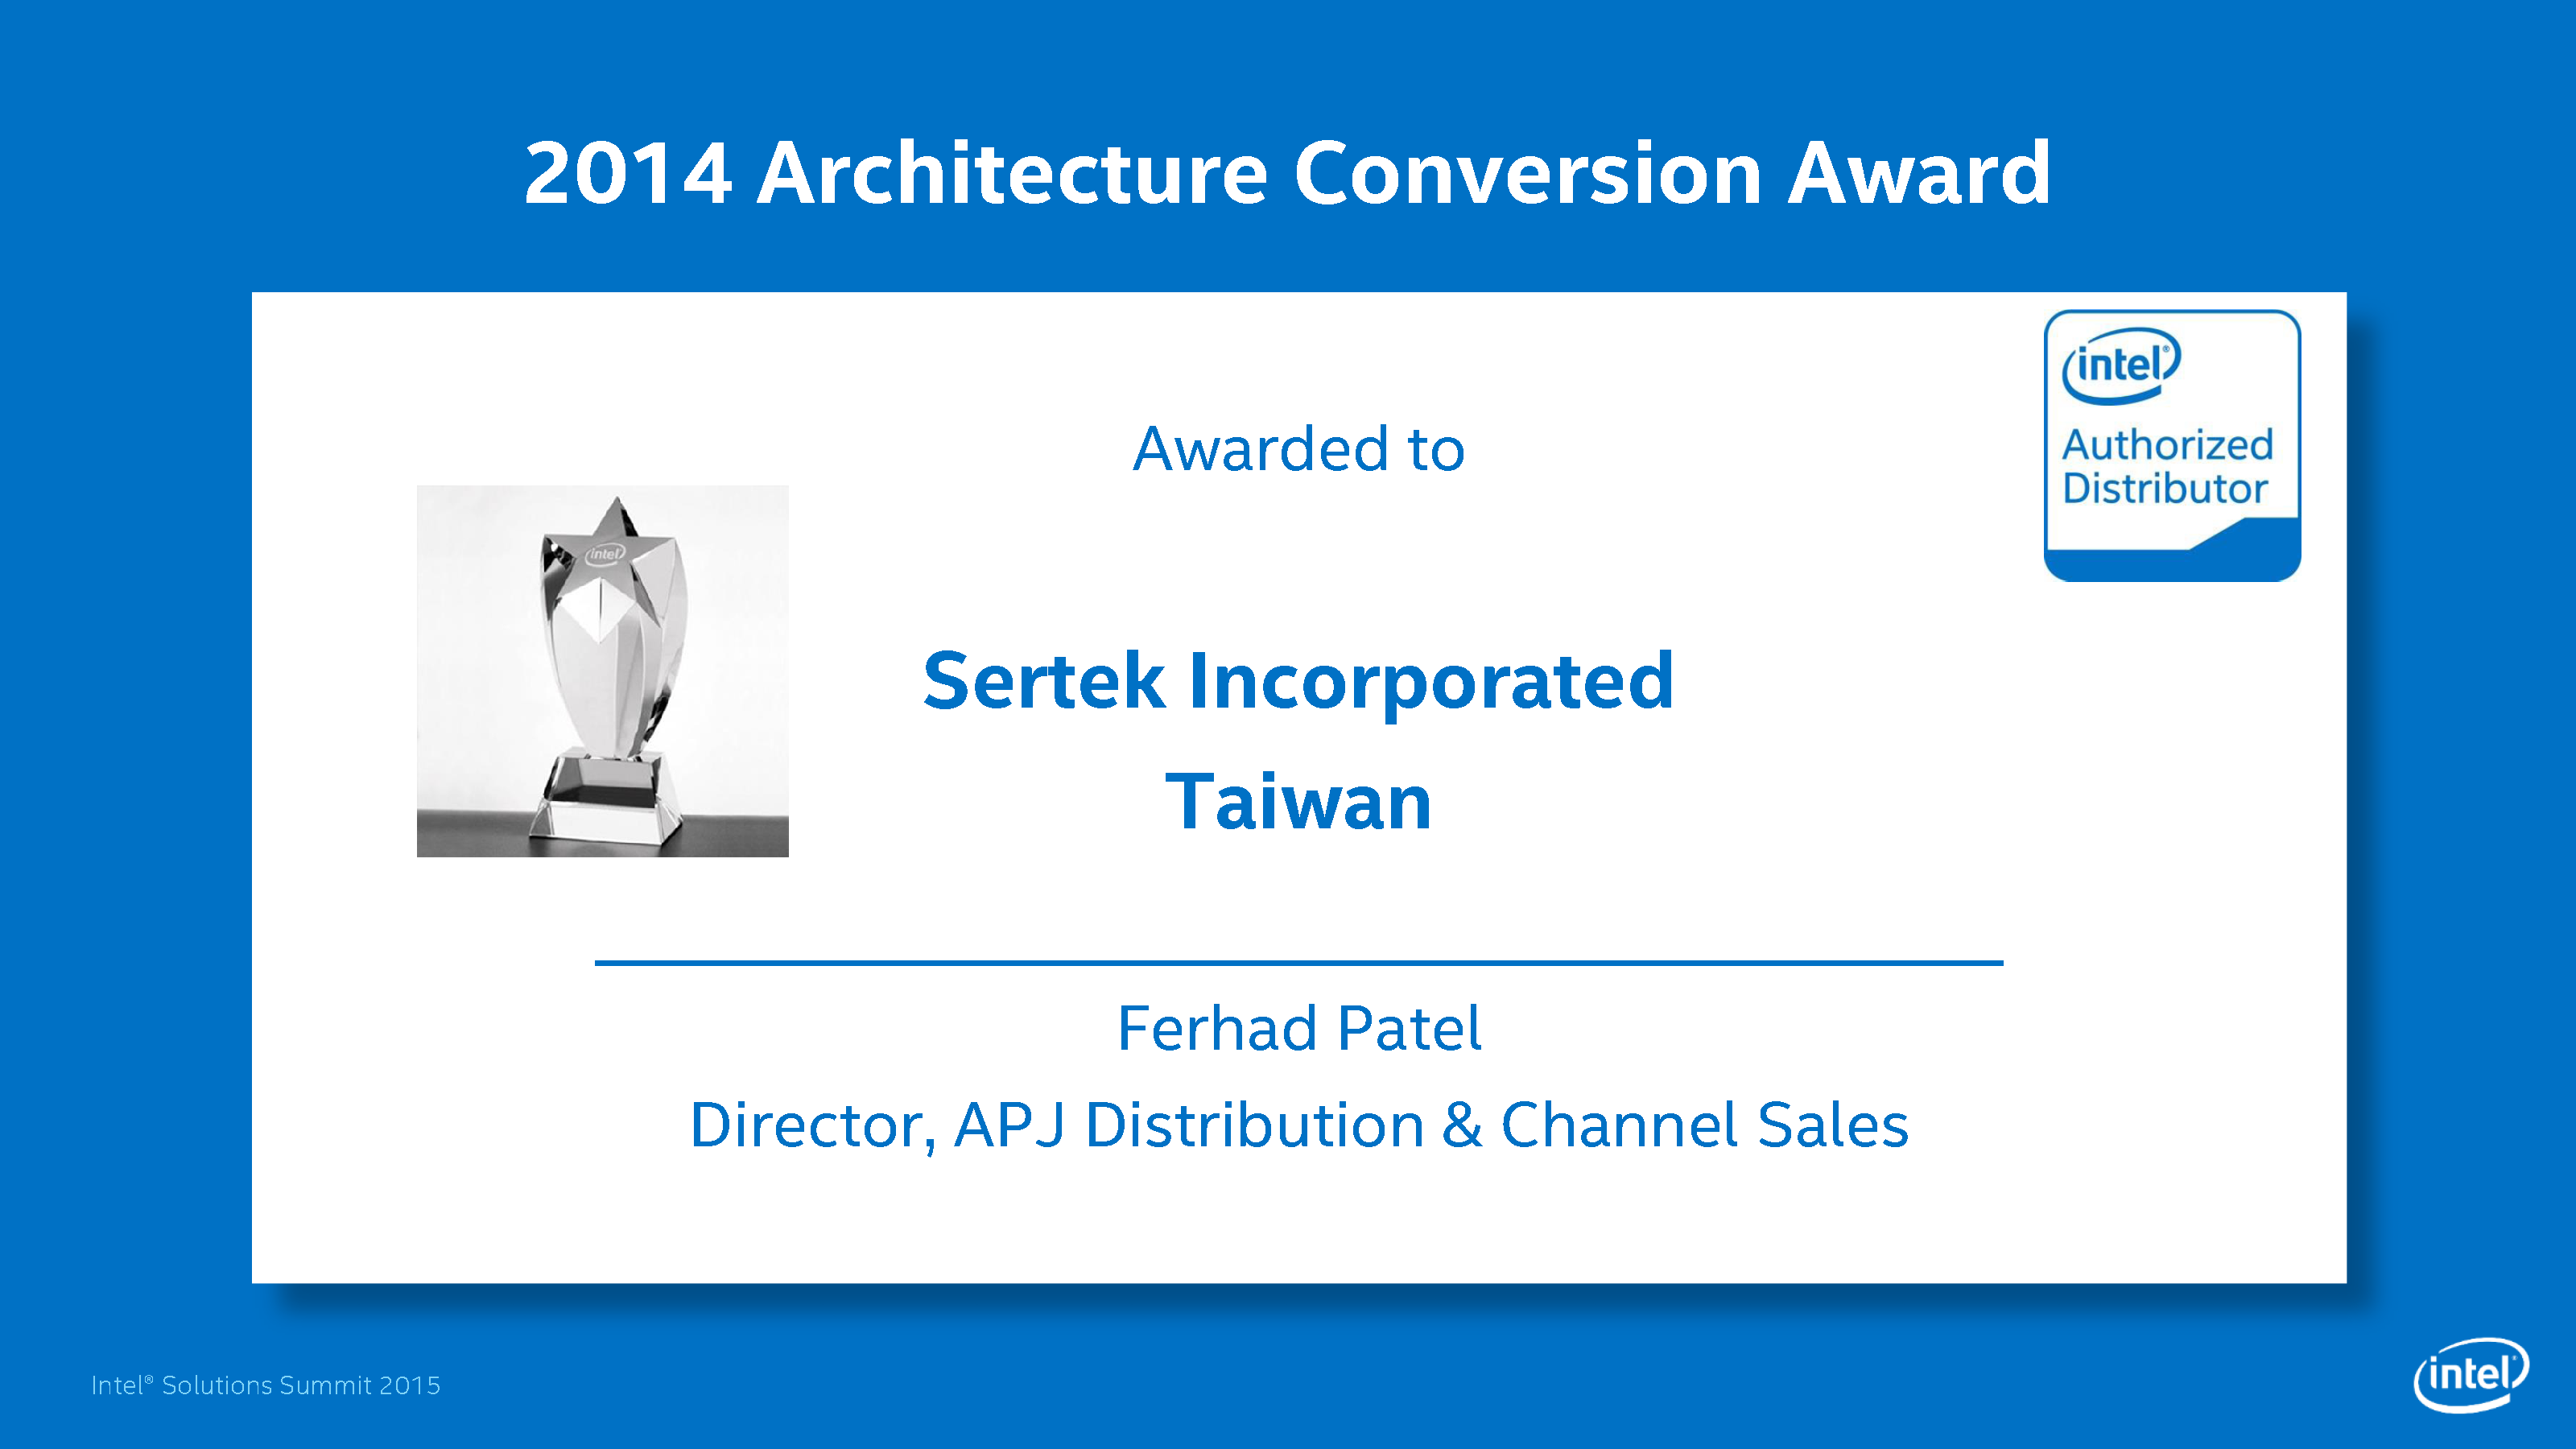 2014 Architecture Conversion Award